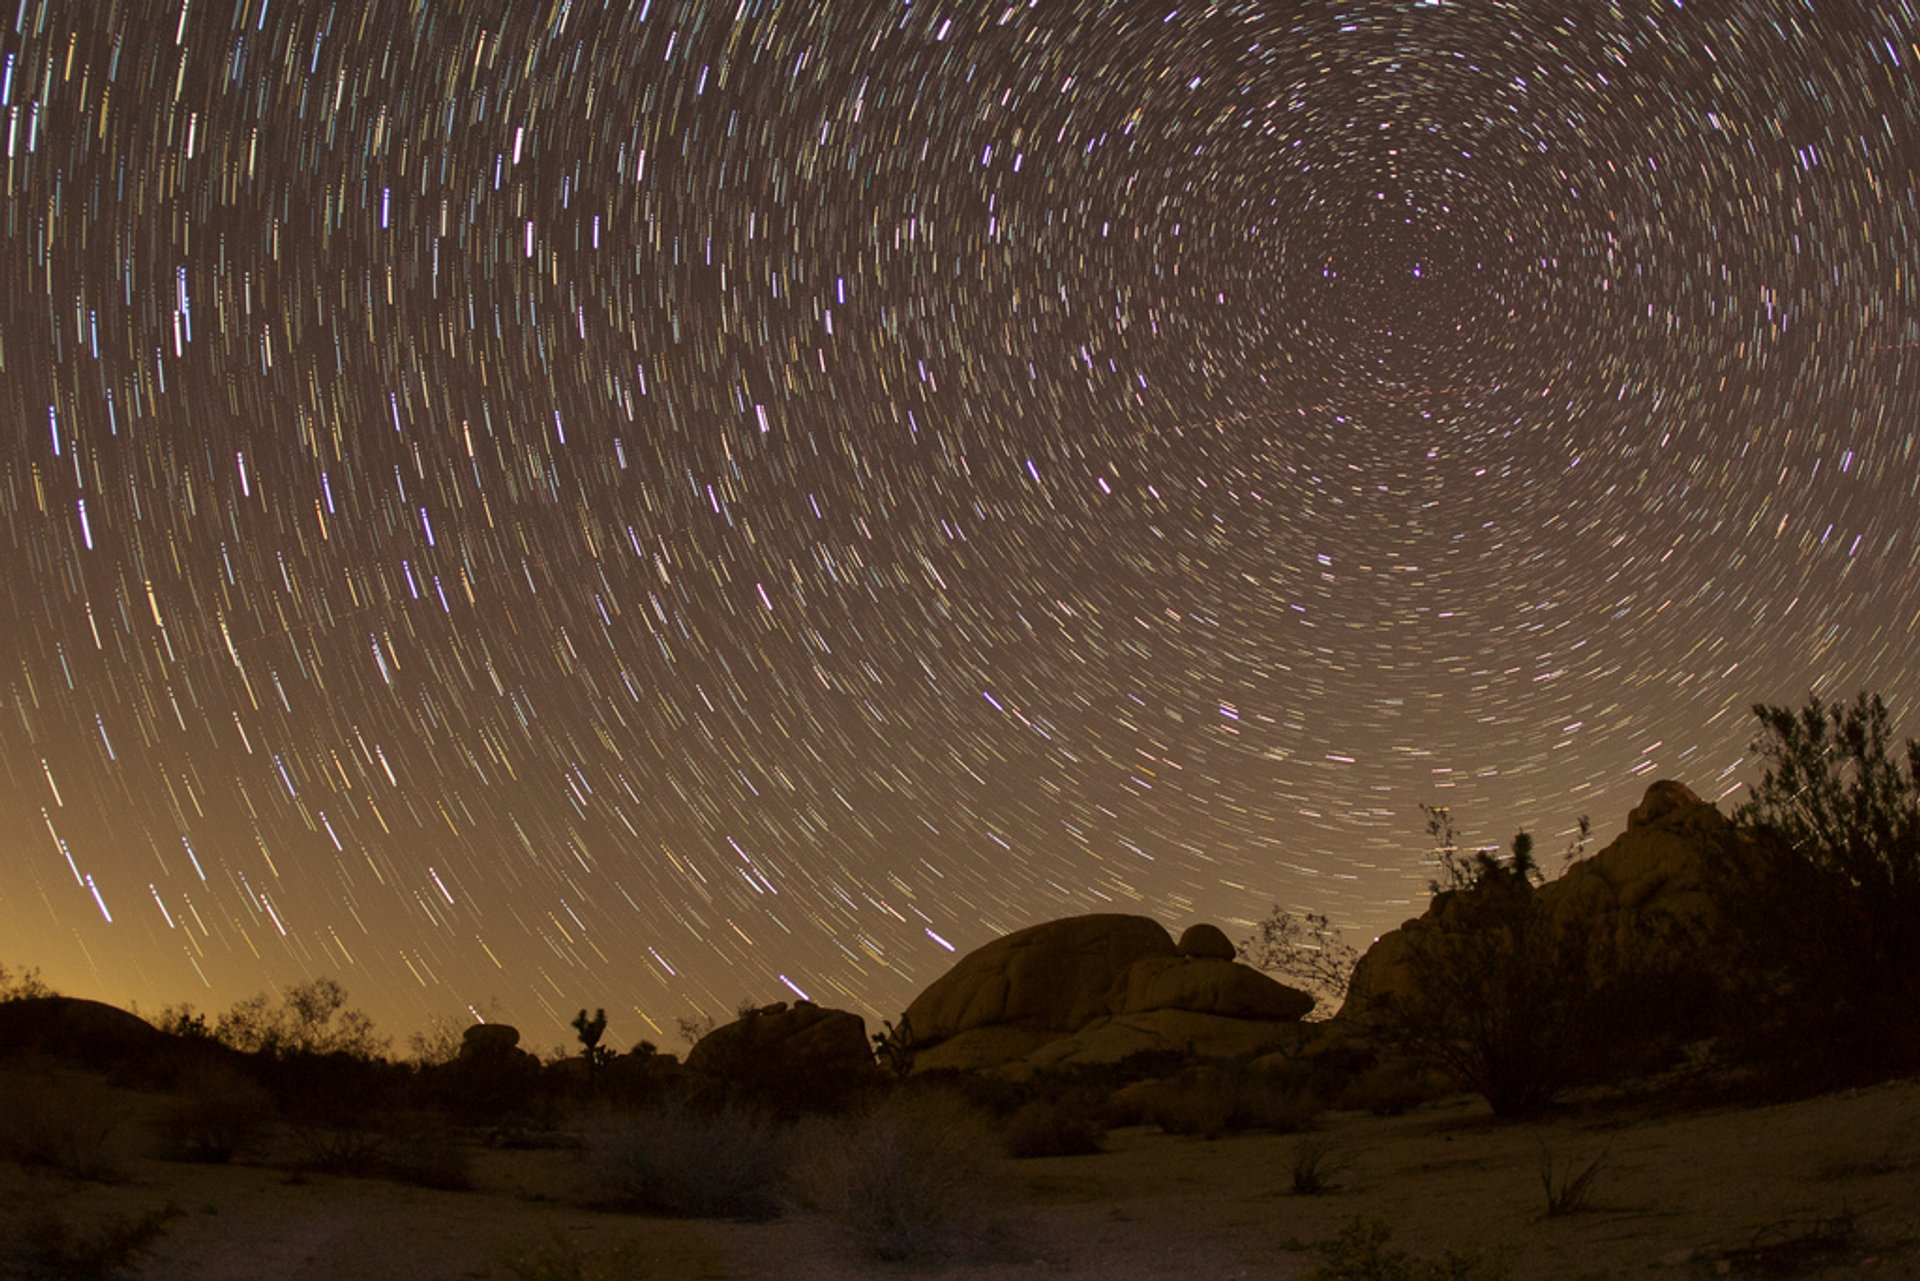 Perseid meteor shower over Joshua Tree National Park 2020